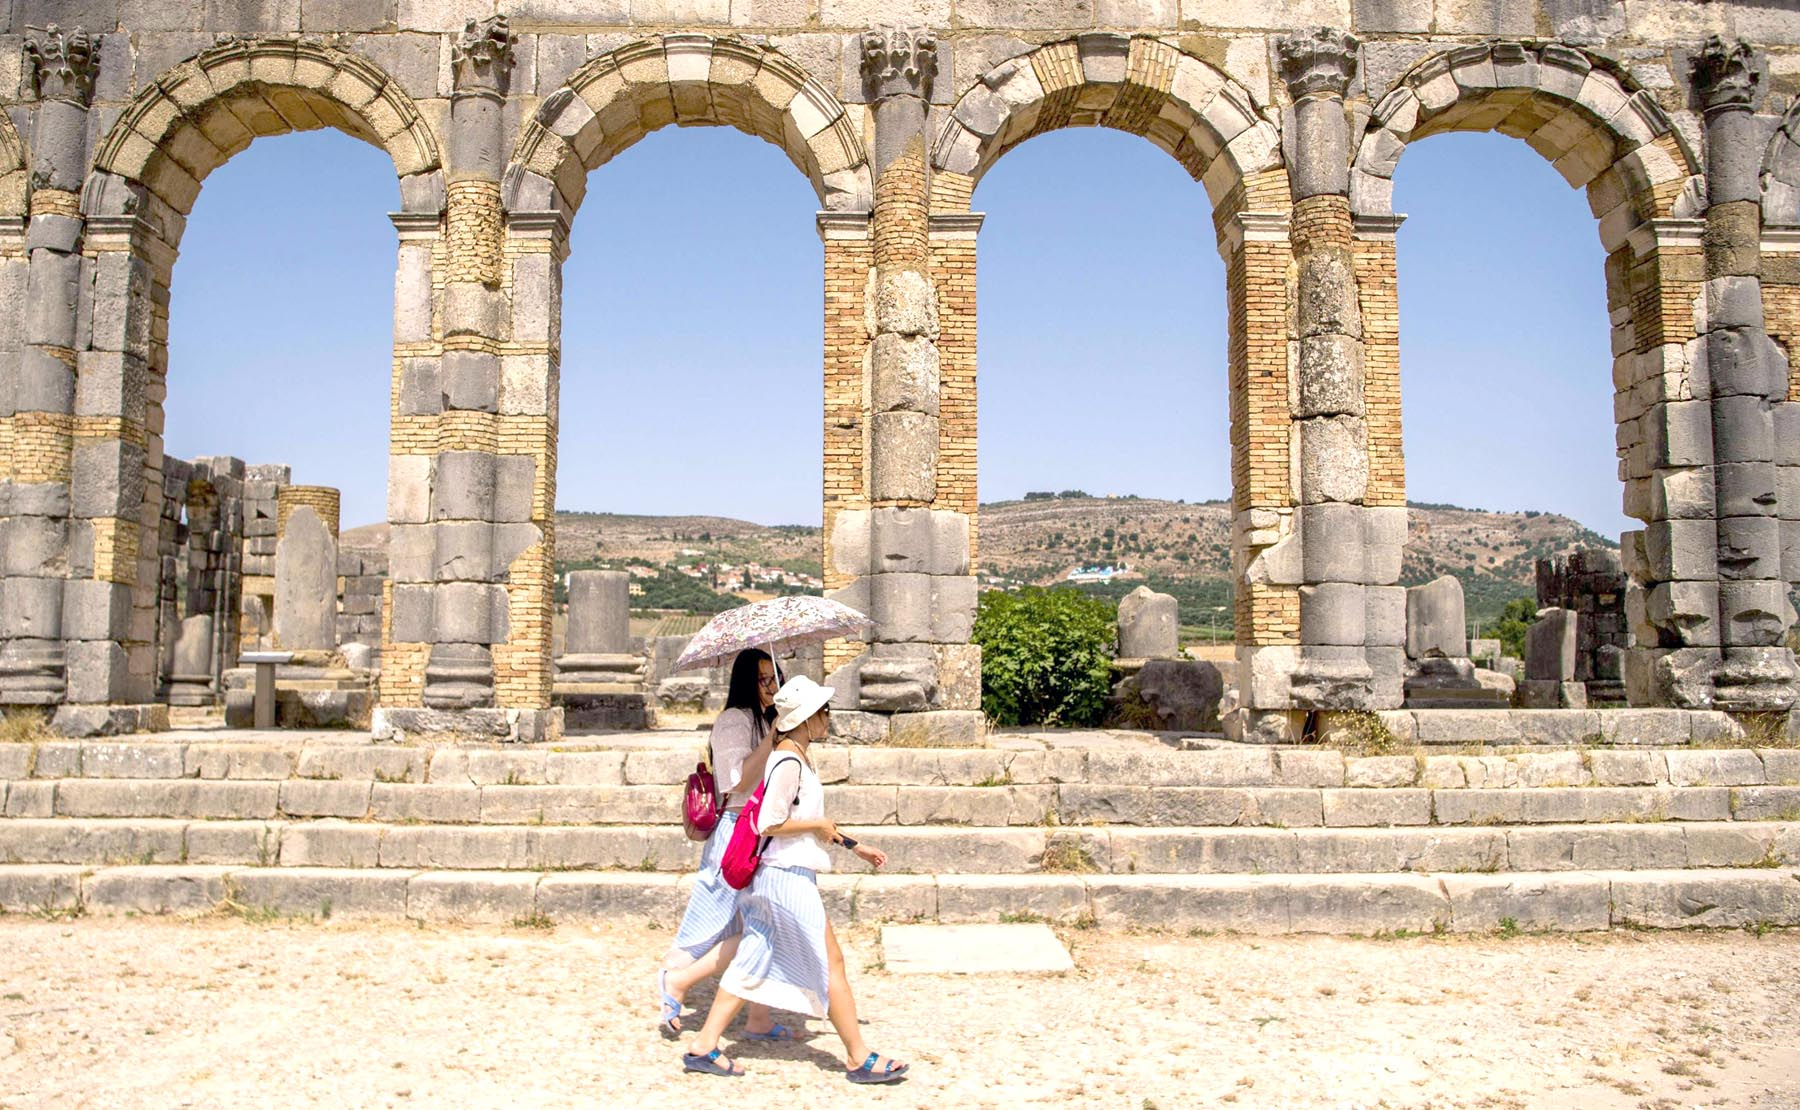 Tourists walk through the ruins of the ancient Roman site of Volubilis, near the town of Moulay Idriss Zerhounon in Morocco's north central Meknes region.  	  (AFP)